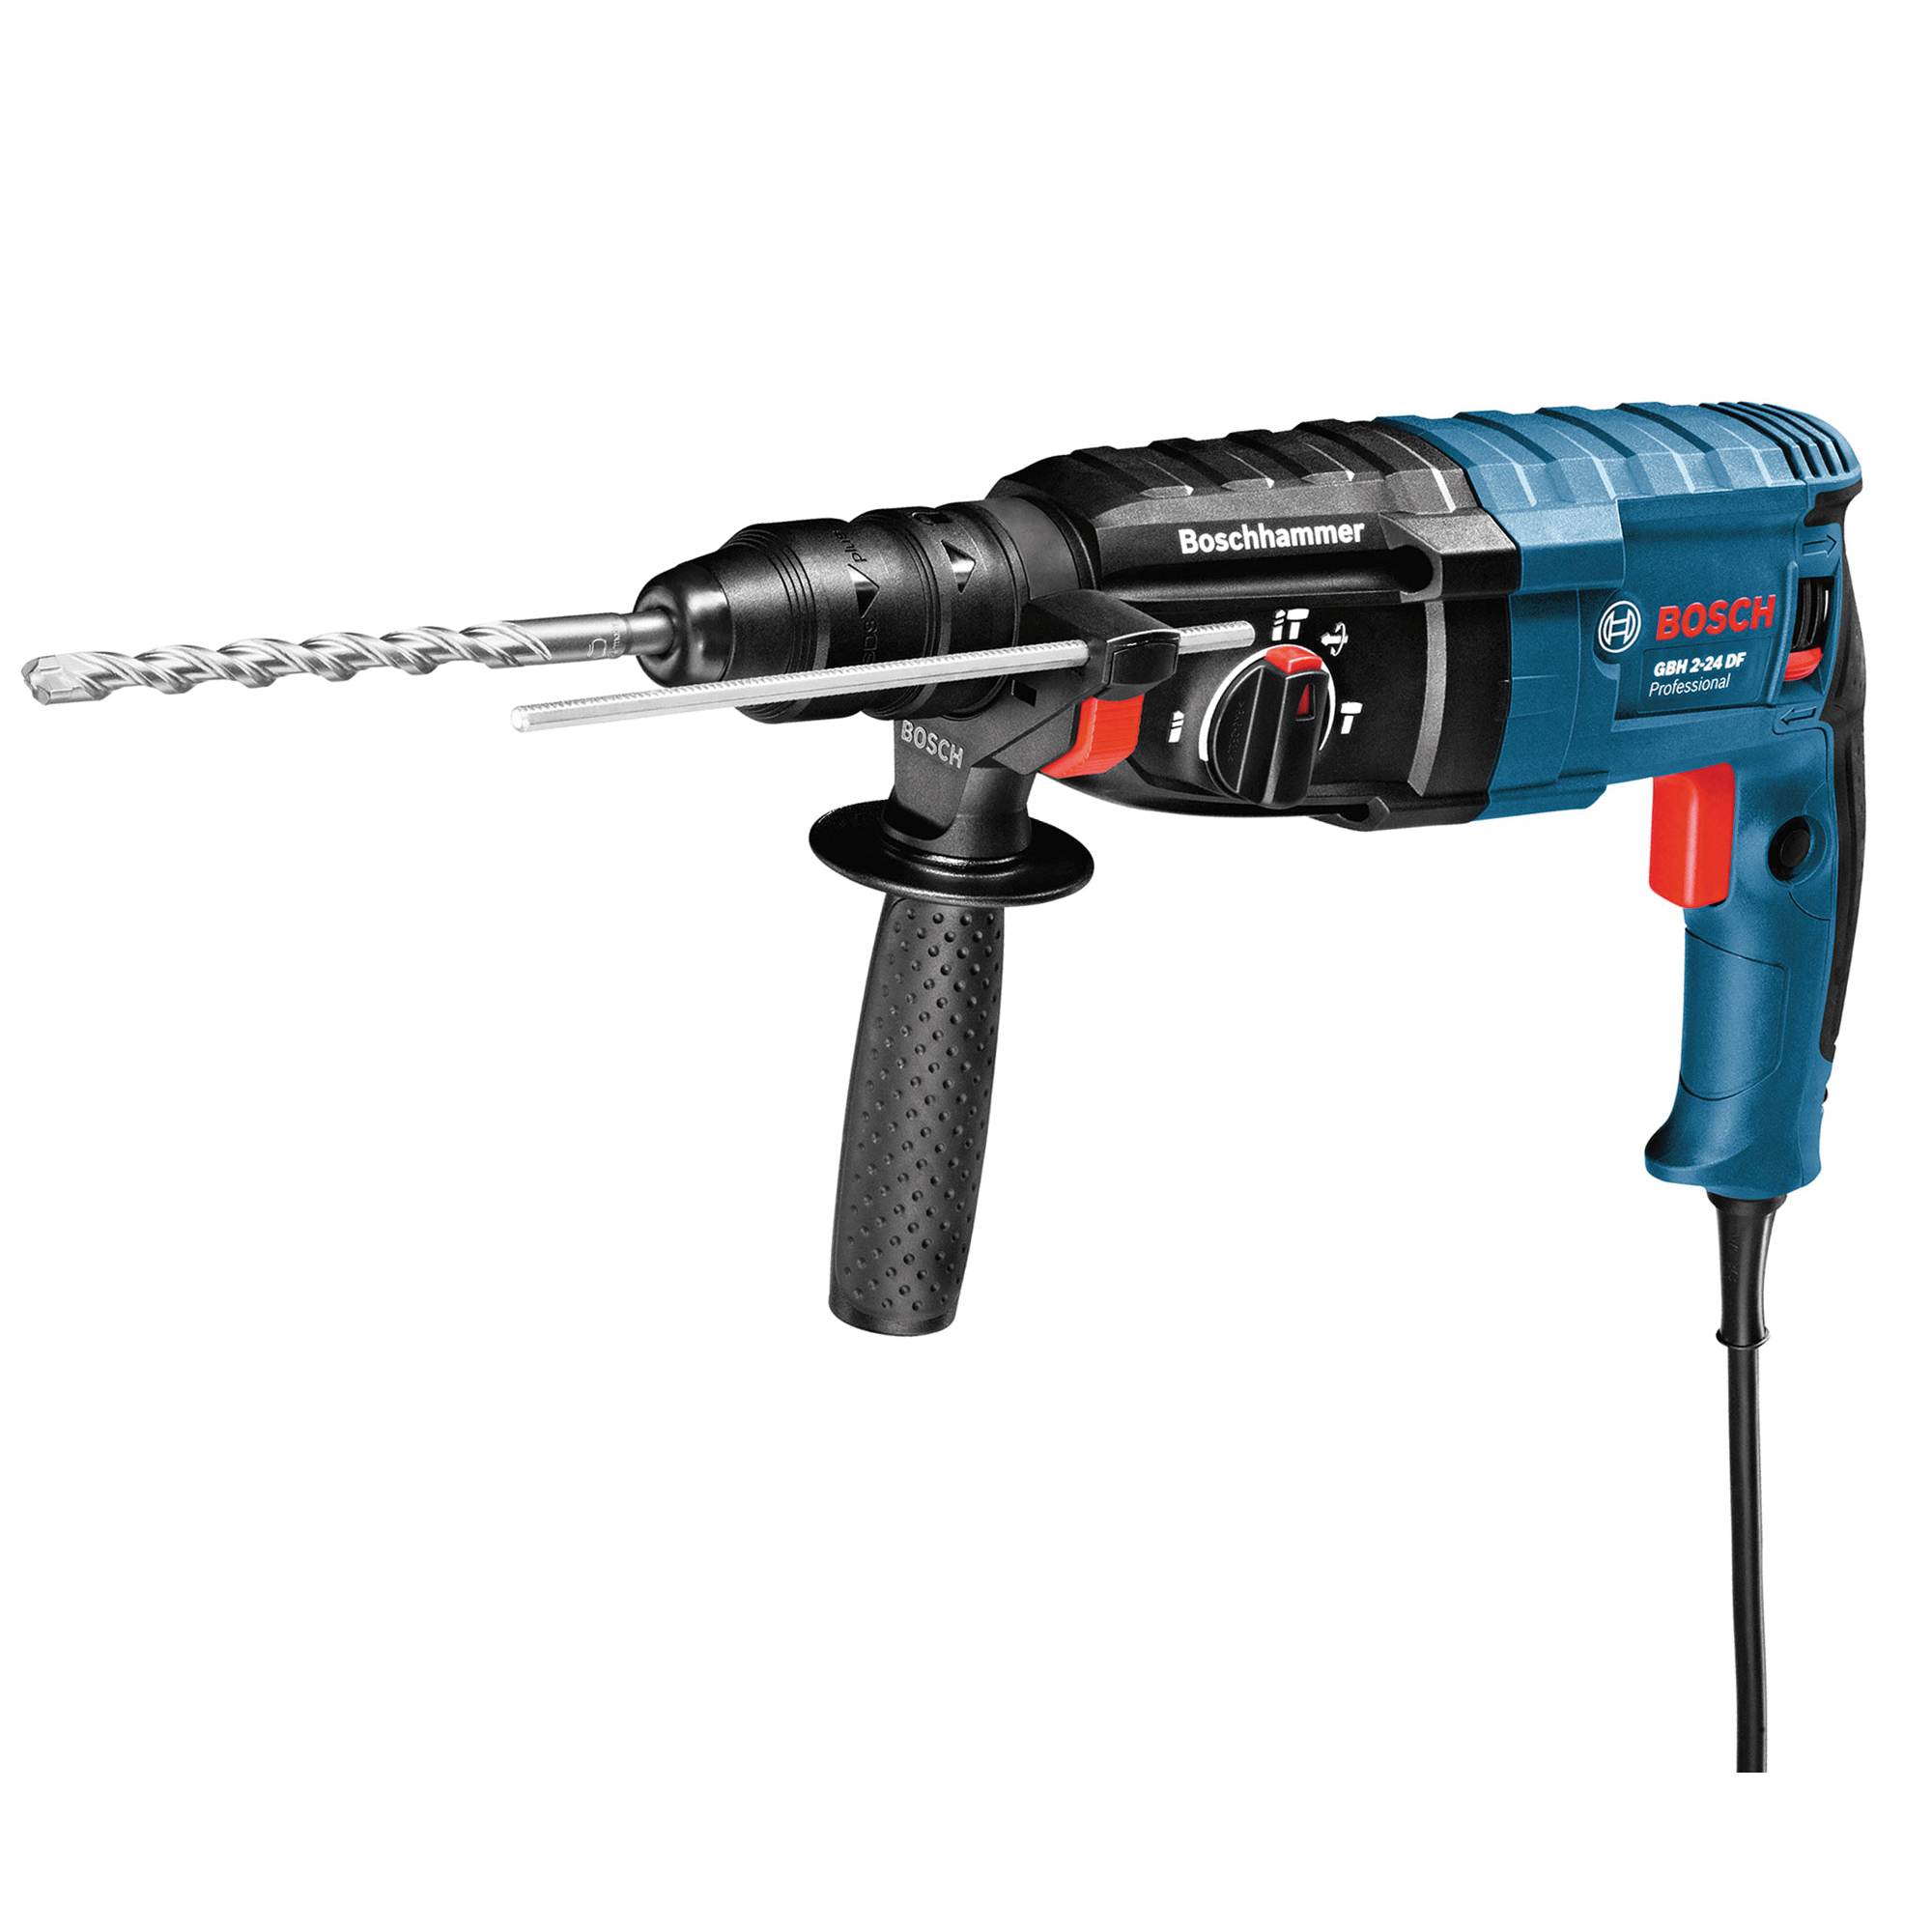 bosch gbh 2 24 d bosch 3 mode 2kg sds plus rotary hammer drill. Black Bedroom Furniture Sets. Home Design Ideas